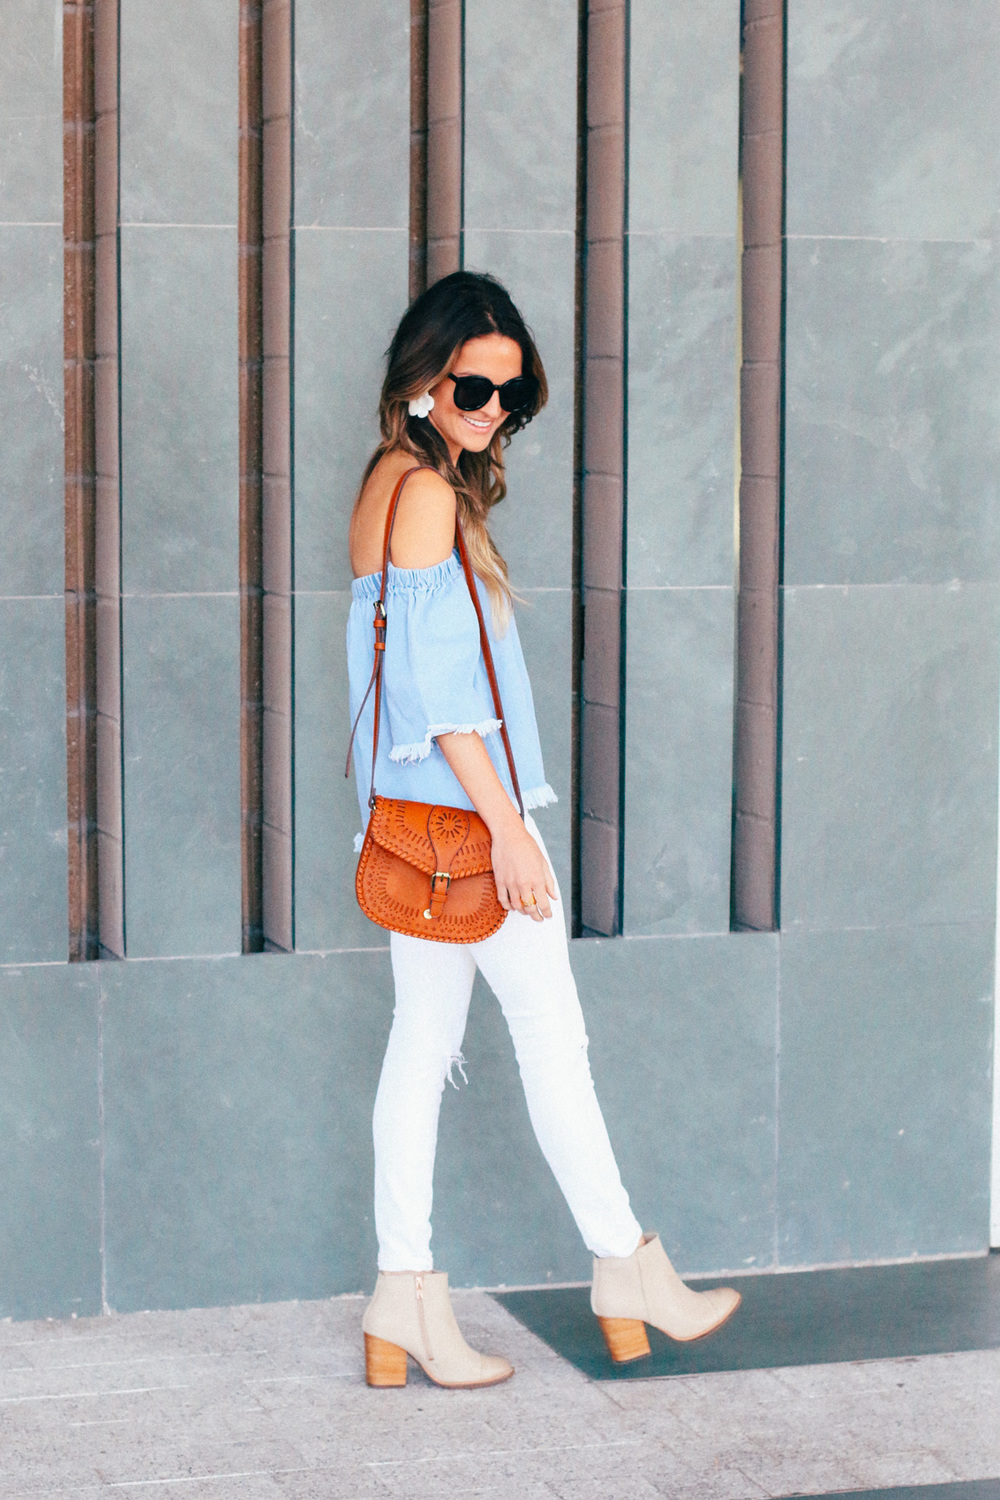 Denim and White Outfit for Summer